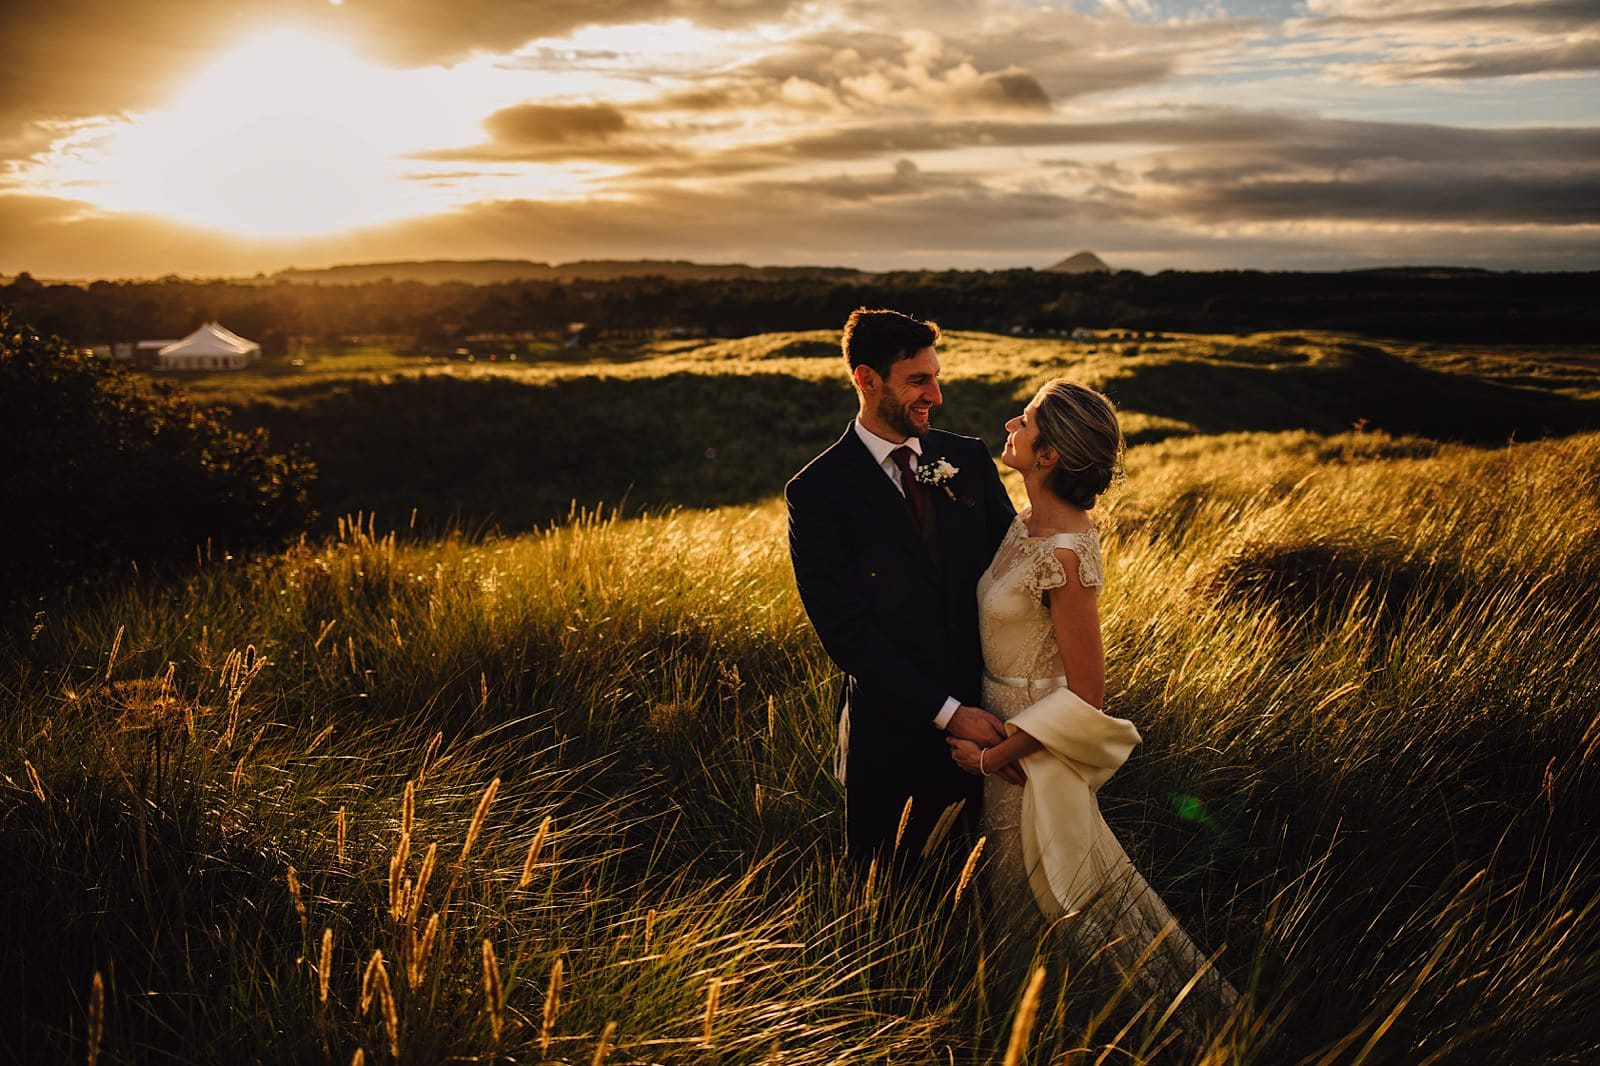 harvest moon dunbar wedding photography 073